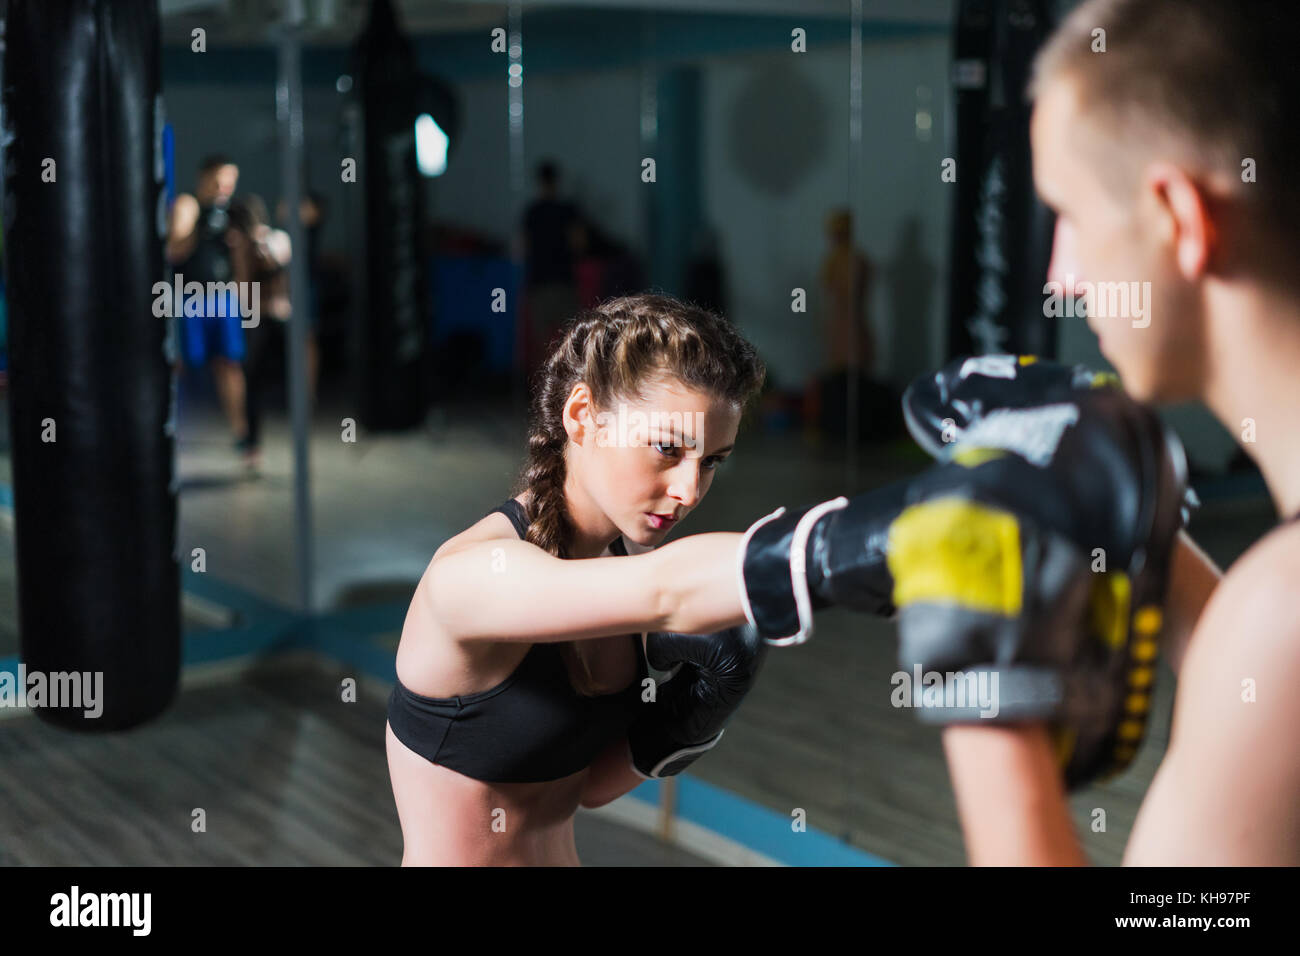 Young fighter boxer fit girl wearing boxing gloves in training   - Stock Image